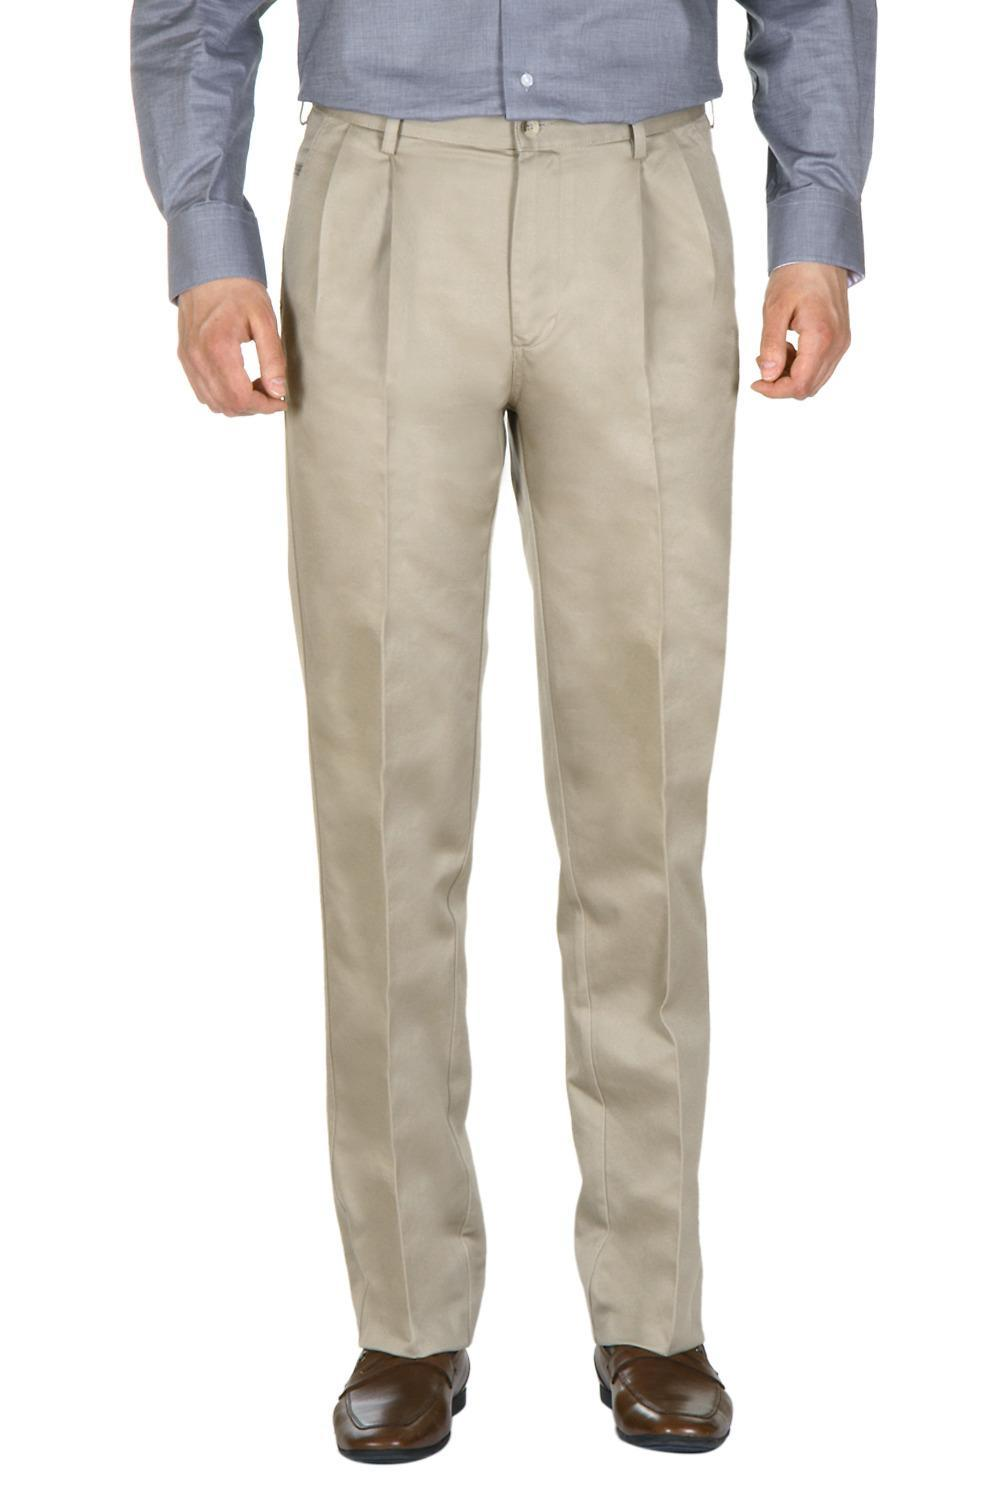 recognized brands catch classic shoes Allen Solly Trousers & Chinos, Cotton Business Casual Pleated Trousers for  Men at Allensolly.com